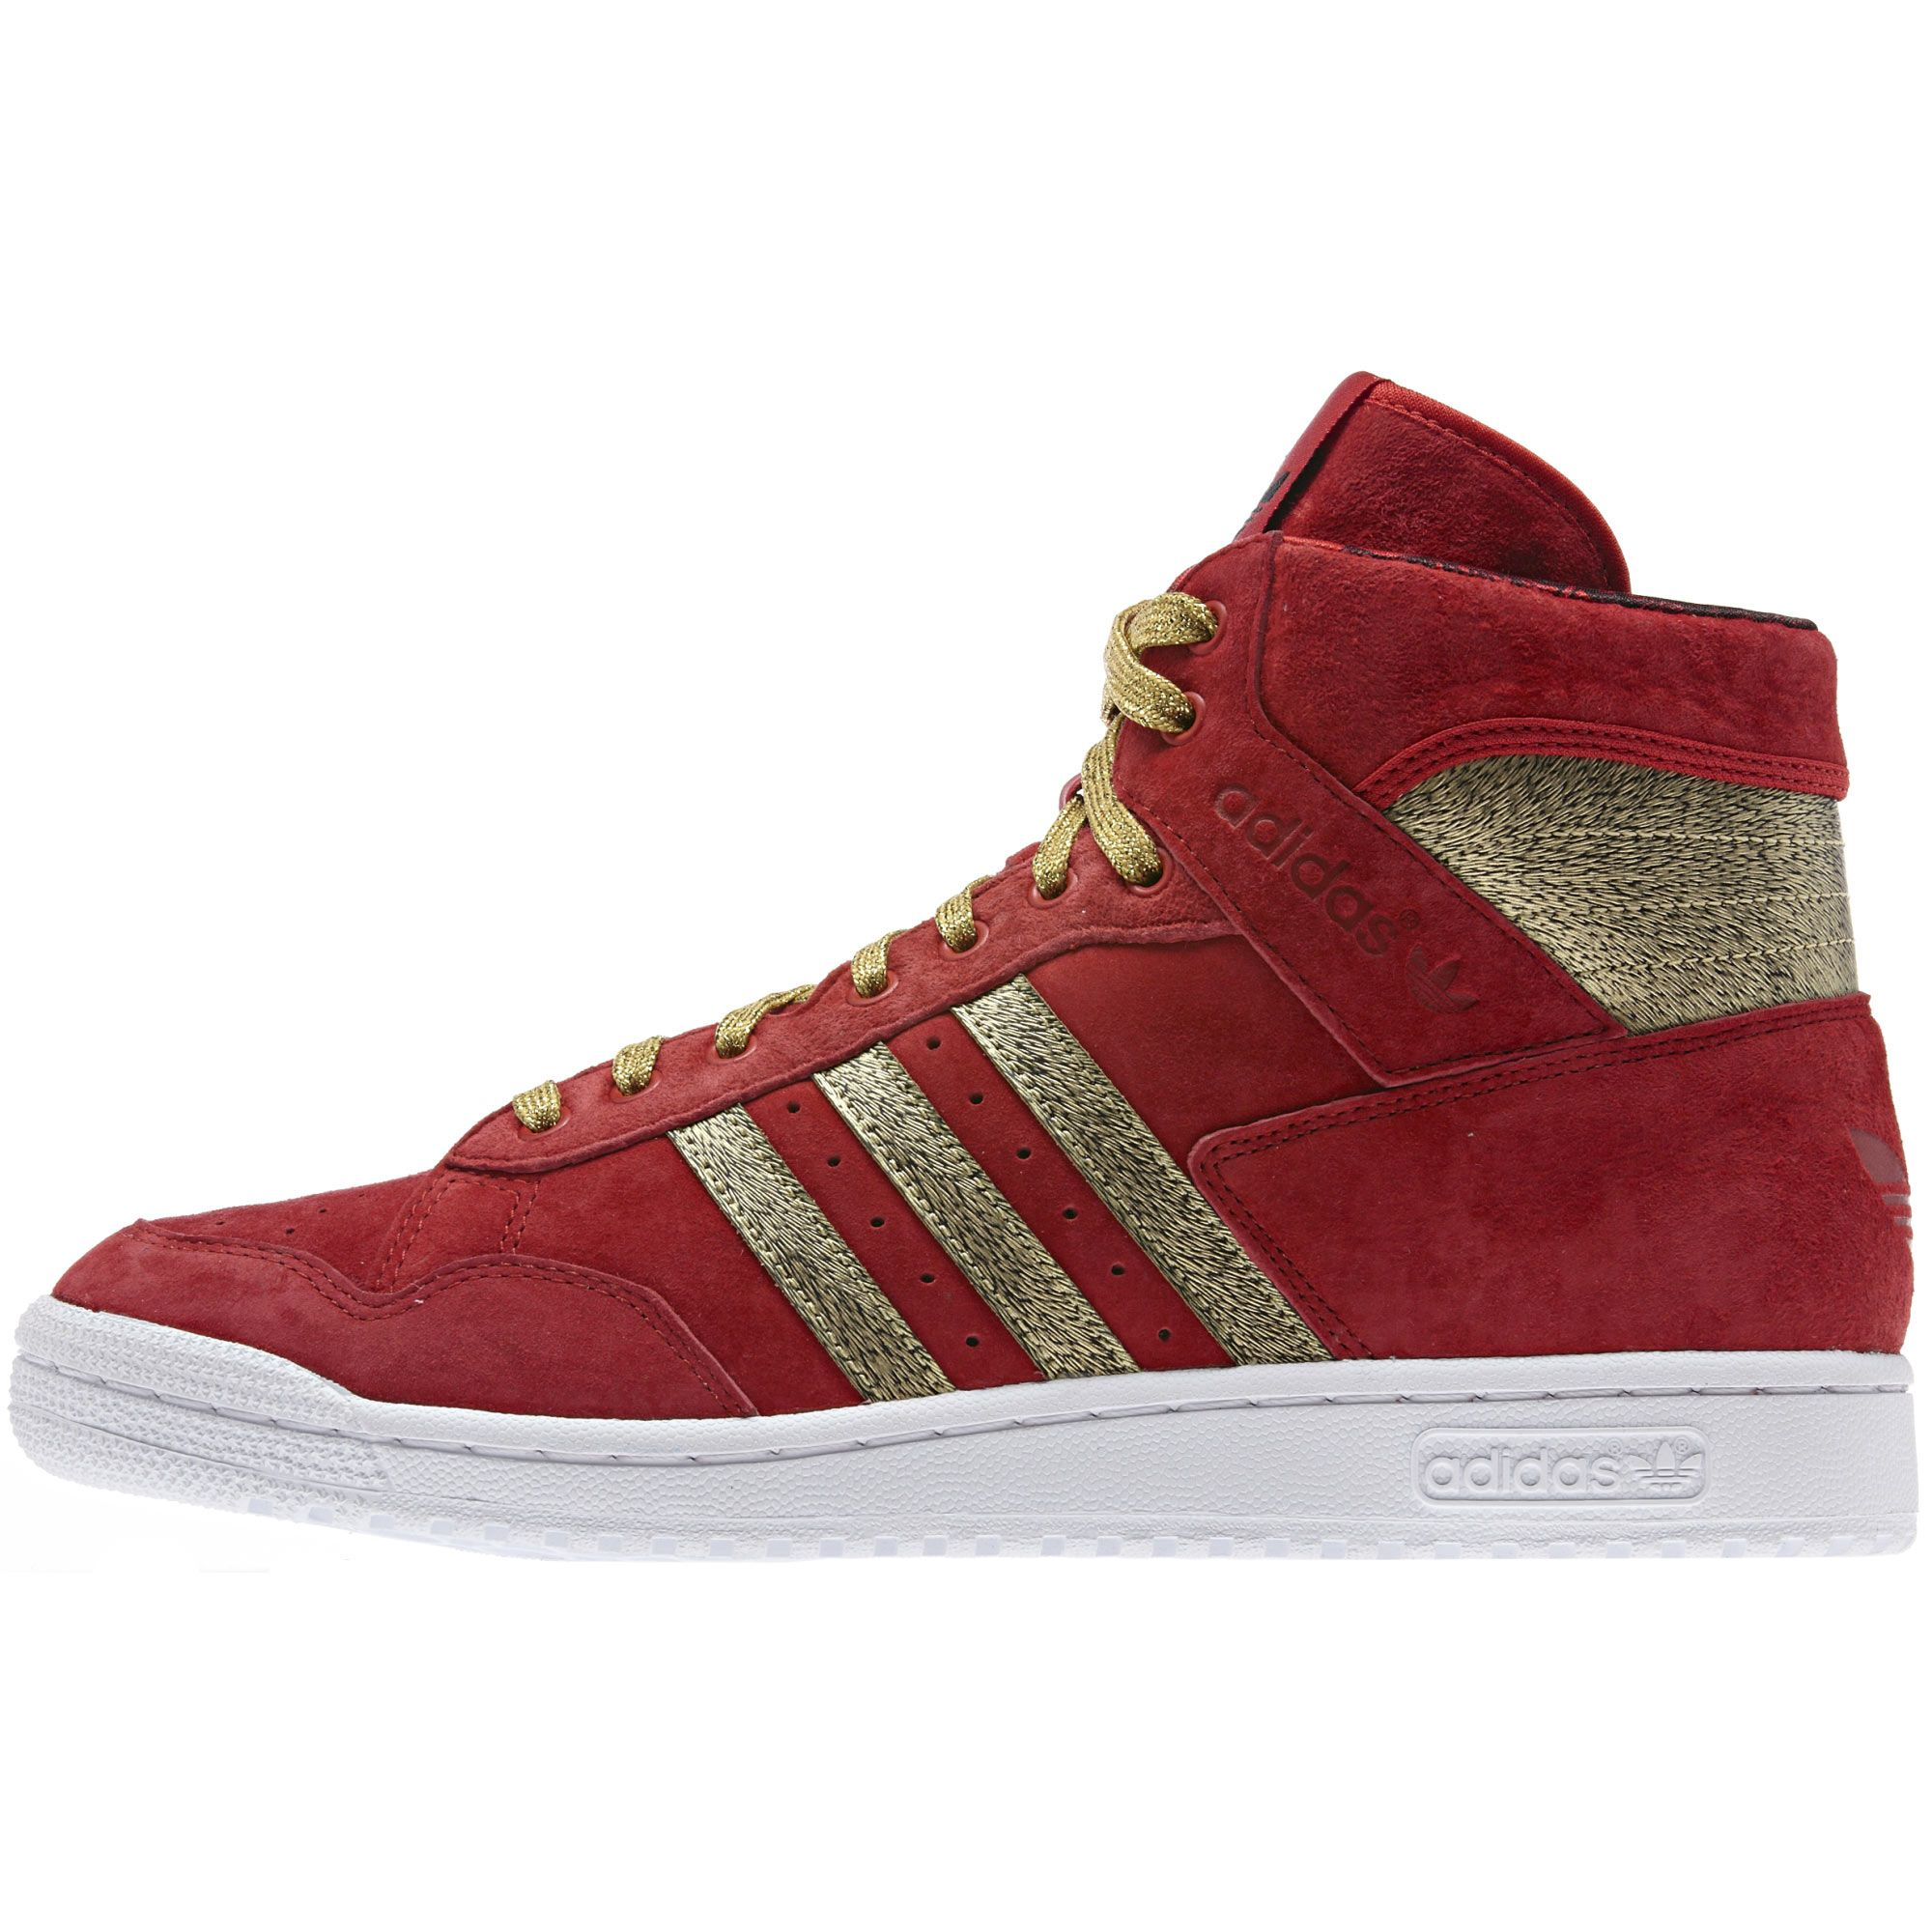 adidas Men's Pro Conference Hi CNY Shoes | adidas Canada //wantwantwan #smaug